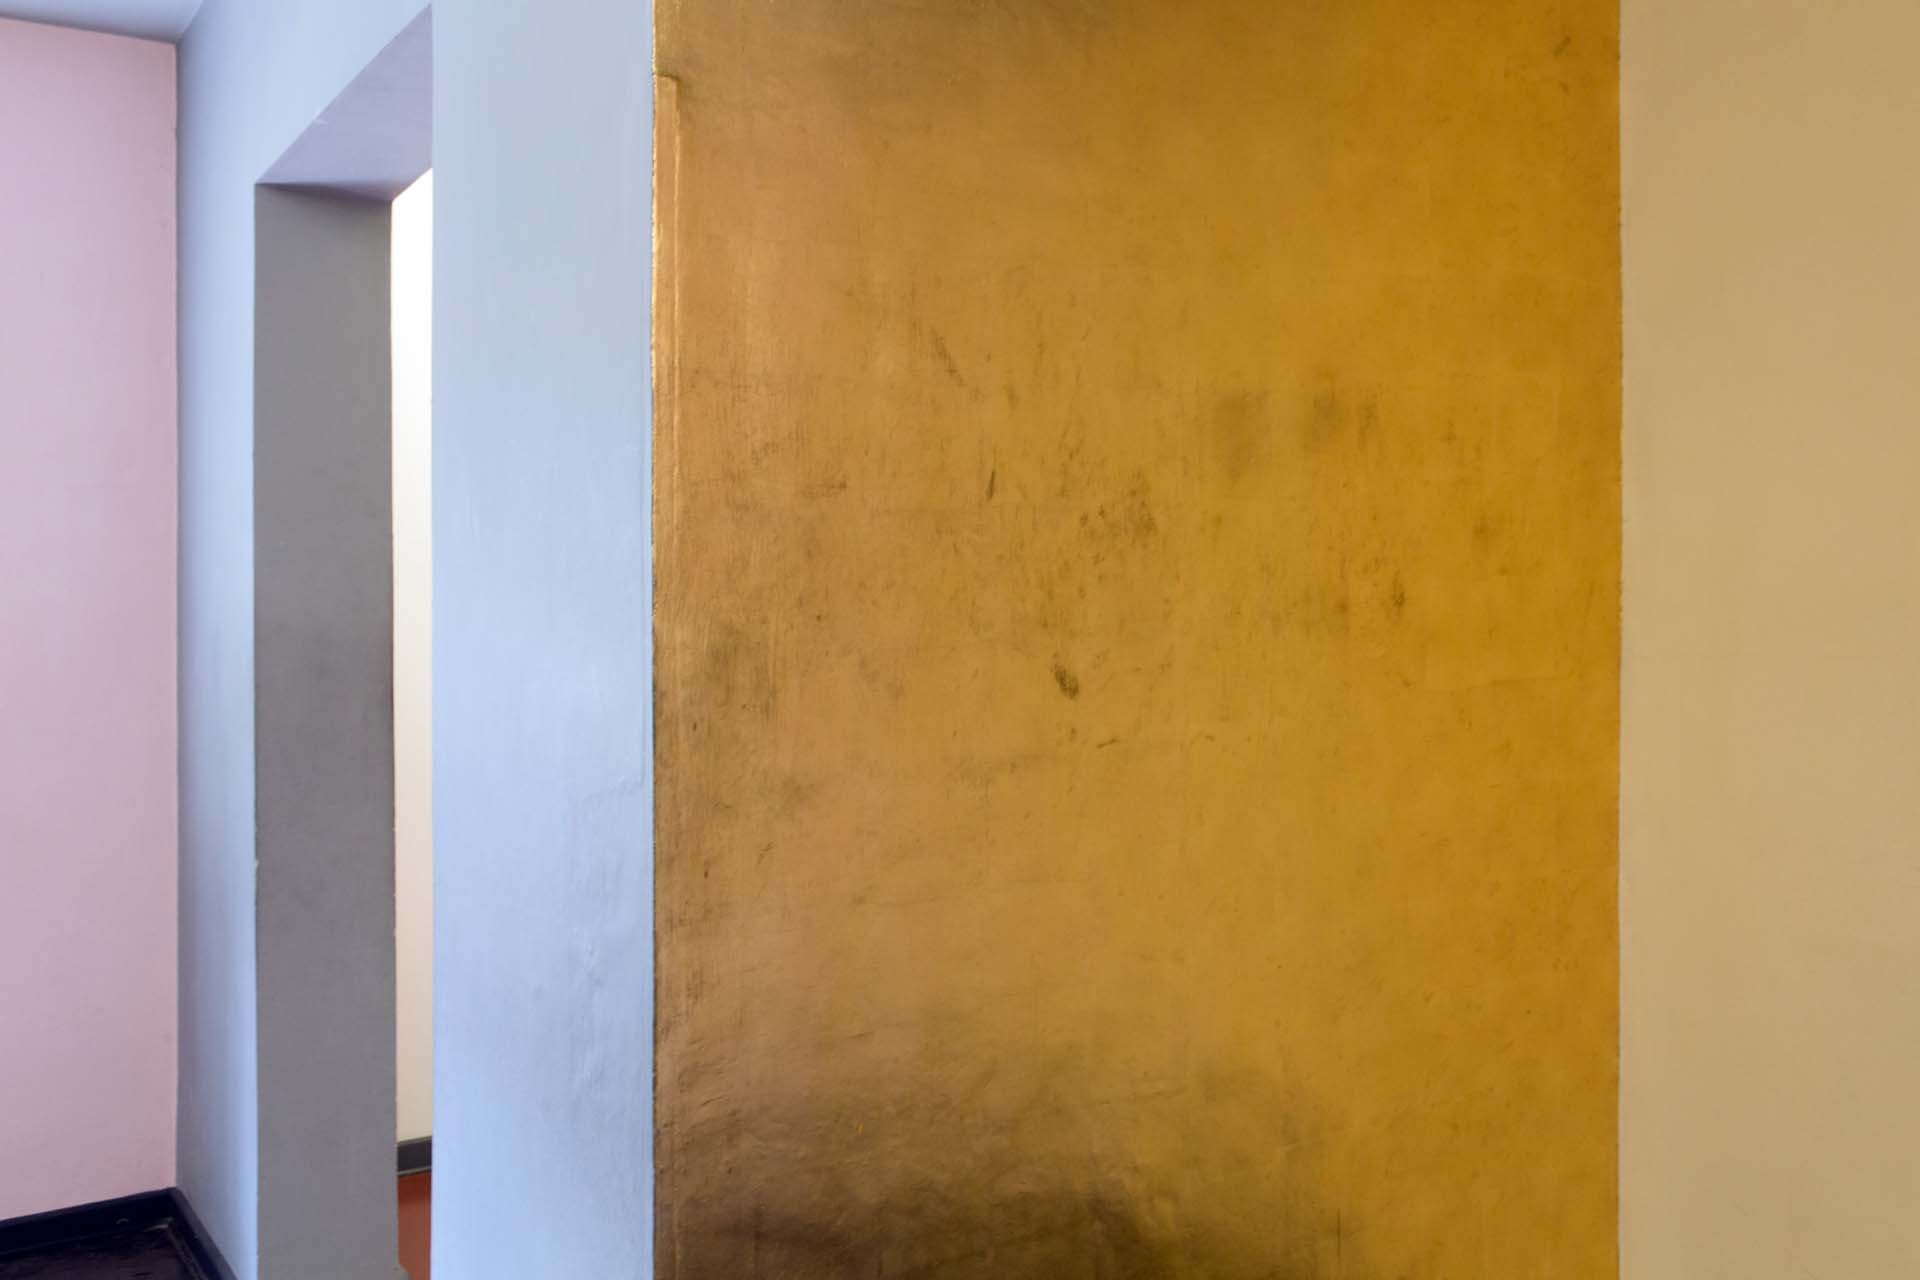 Gilded wall niche in the living room of the Dessau Kandinsky/Klee Master House. Wassily and Nina Kandinsky's gold wall piece made of impact metal was restored in 2003.